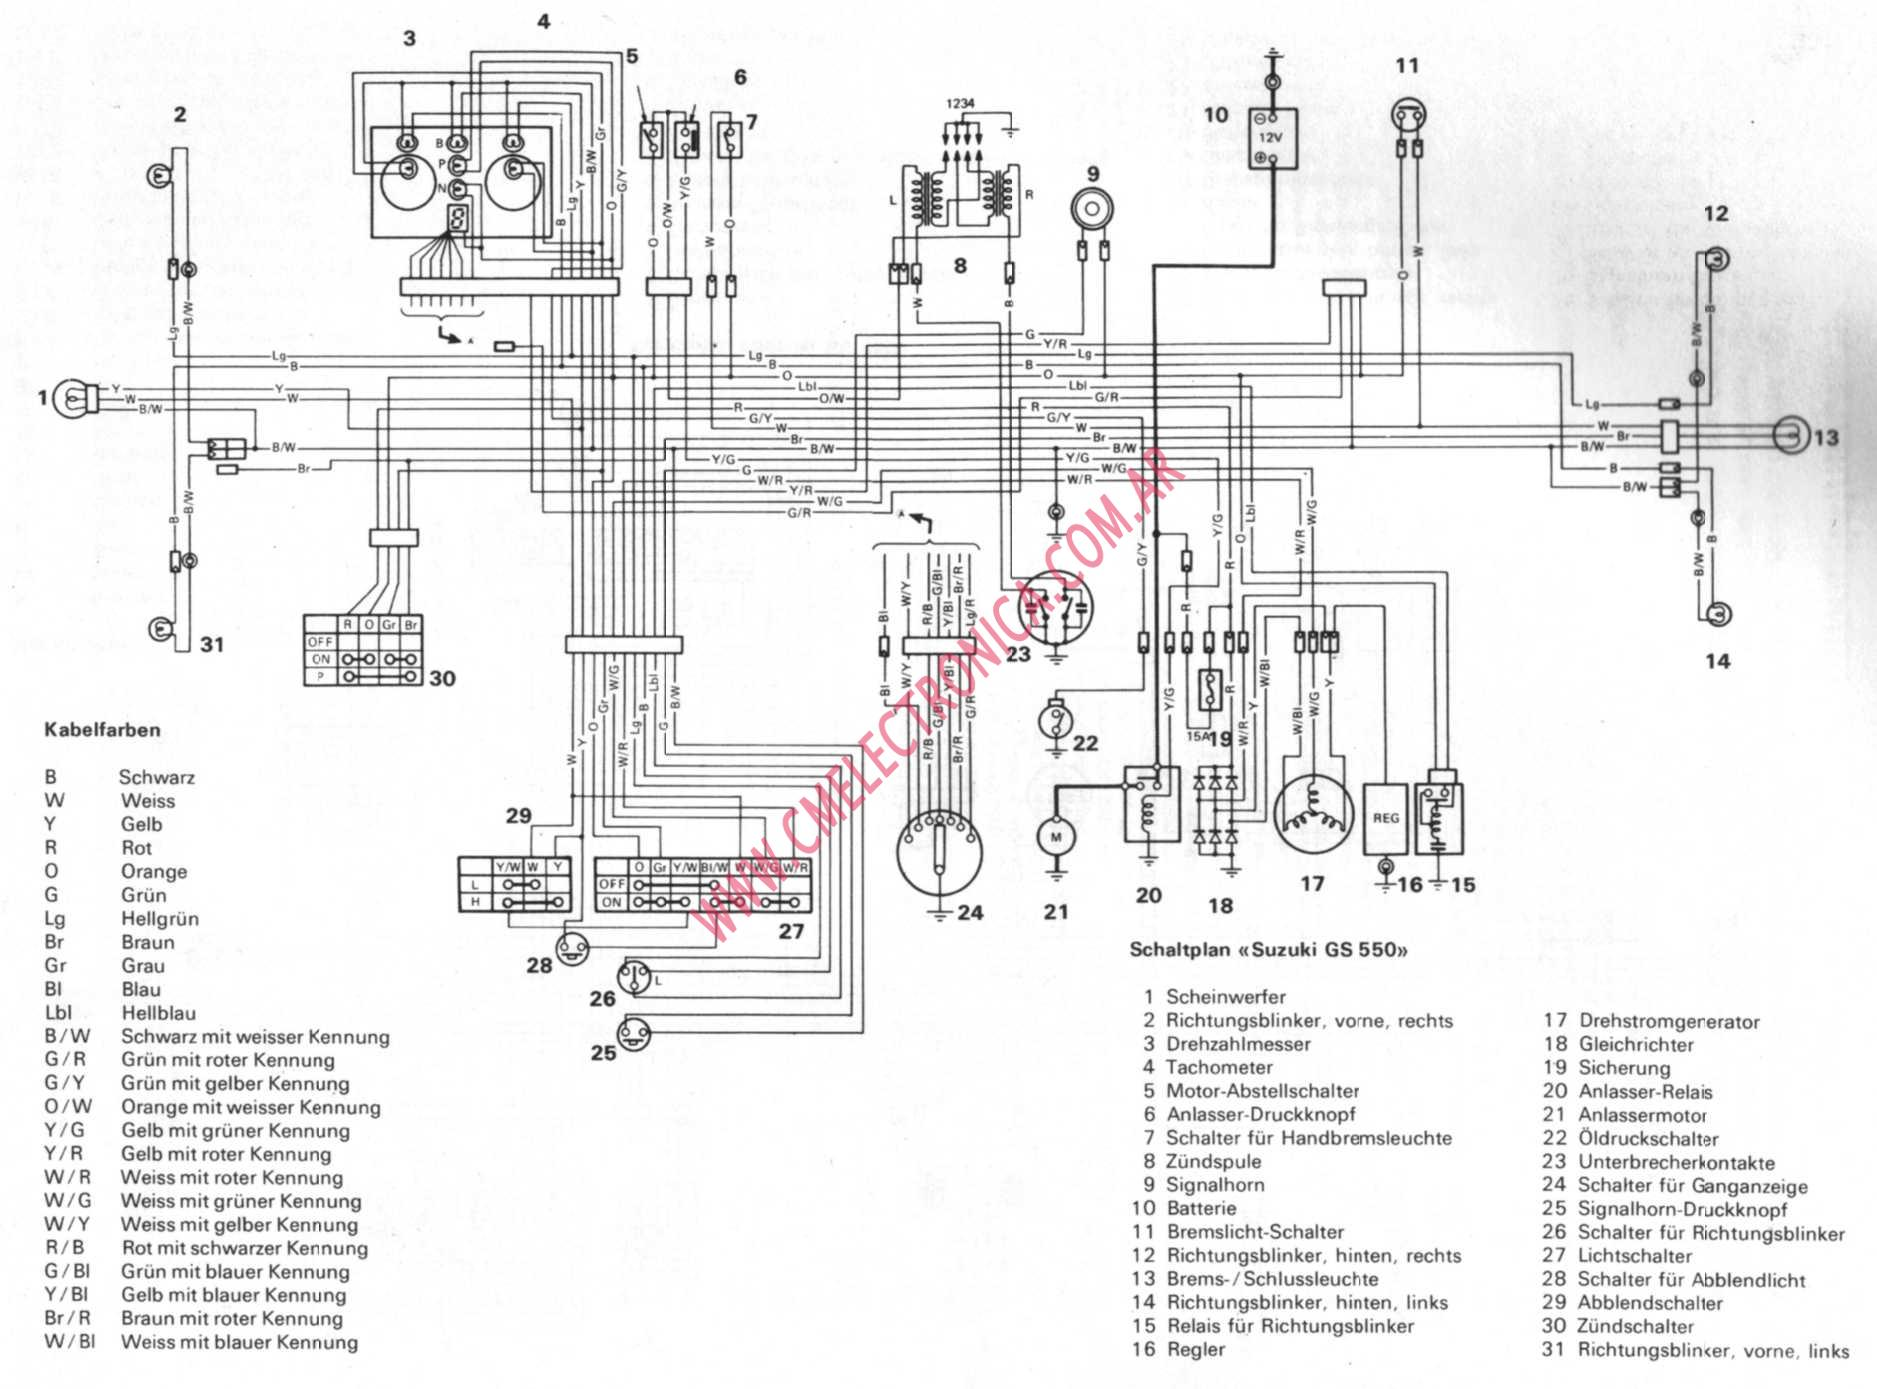 suzuki gs550 suzuki gs550 wiring diagram 1978 suzuki gs 550 wiring \u2022 free 1980 suzuki gs550 wiring diagram at panicattacktreatment.co